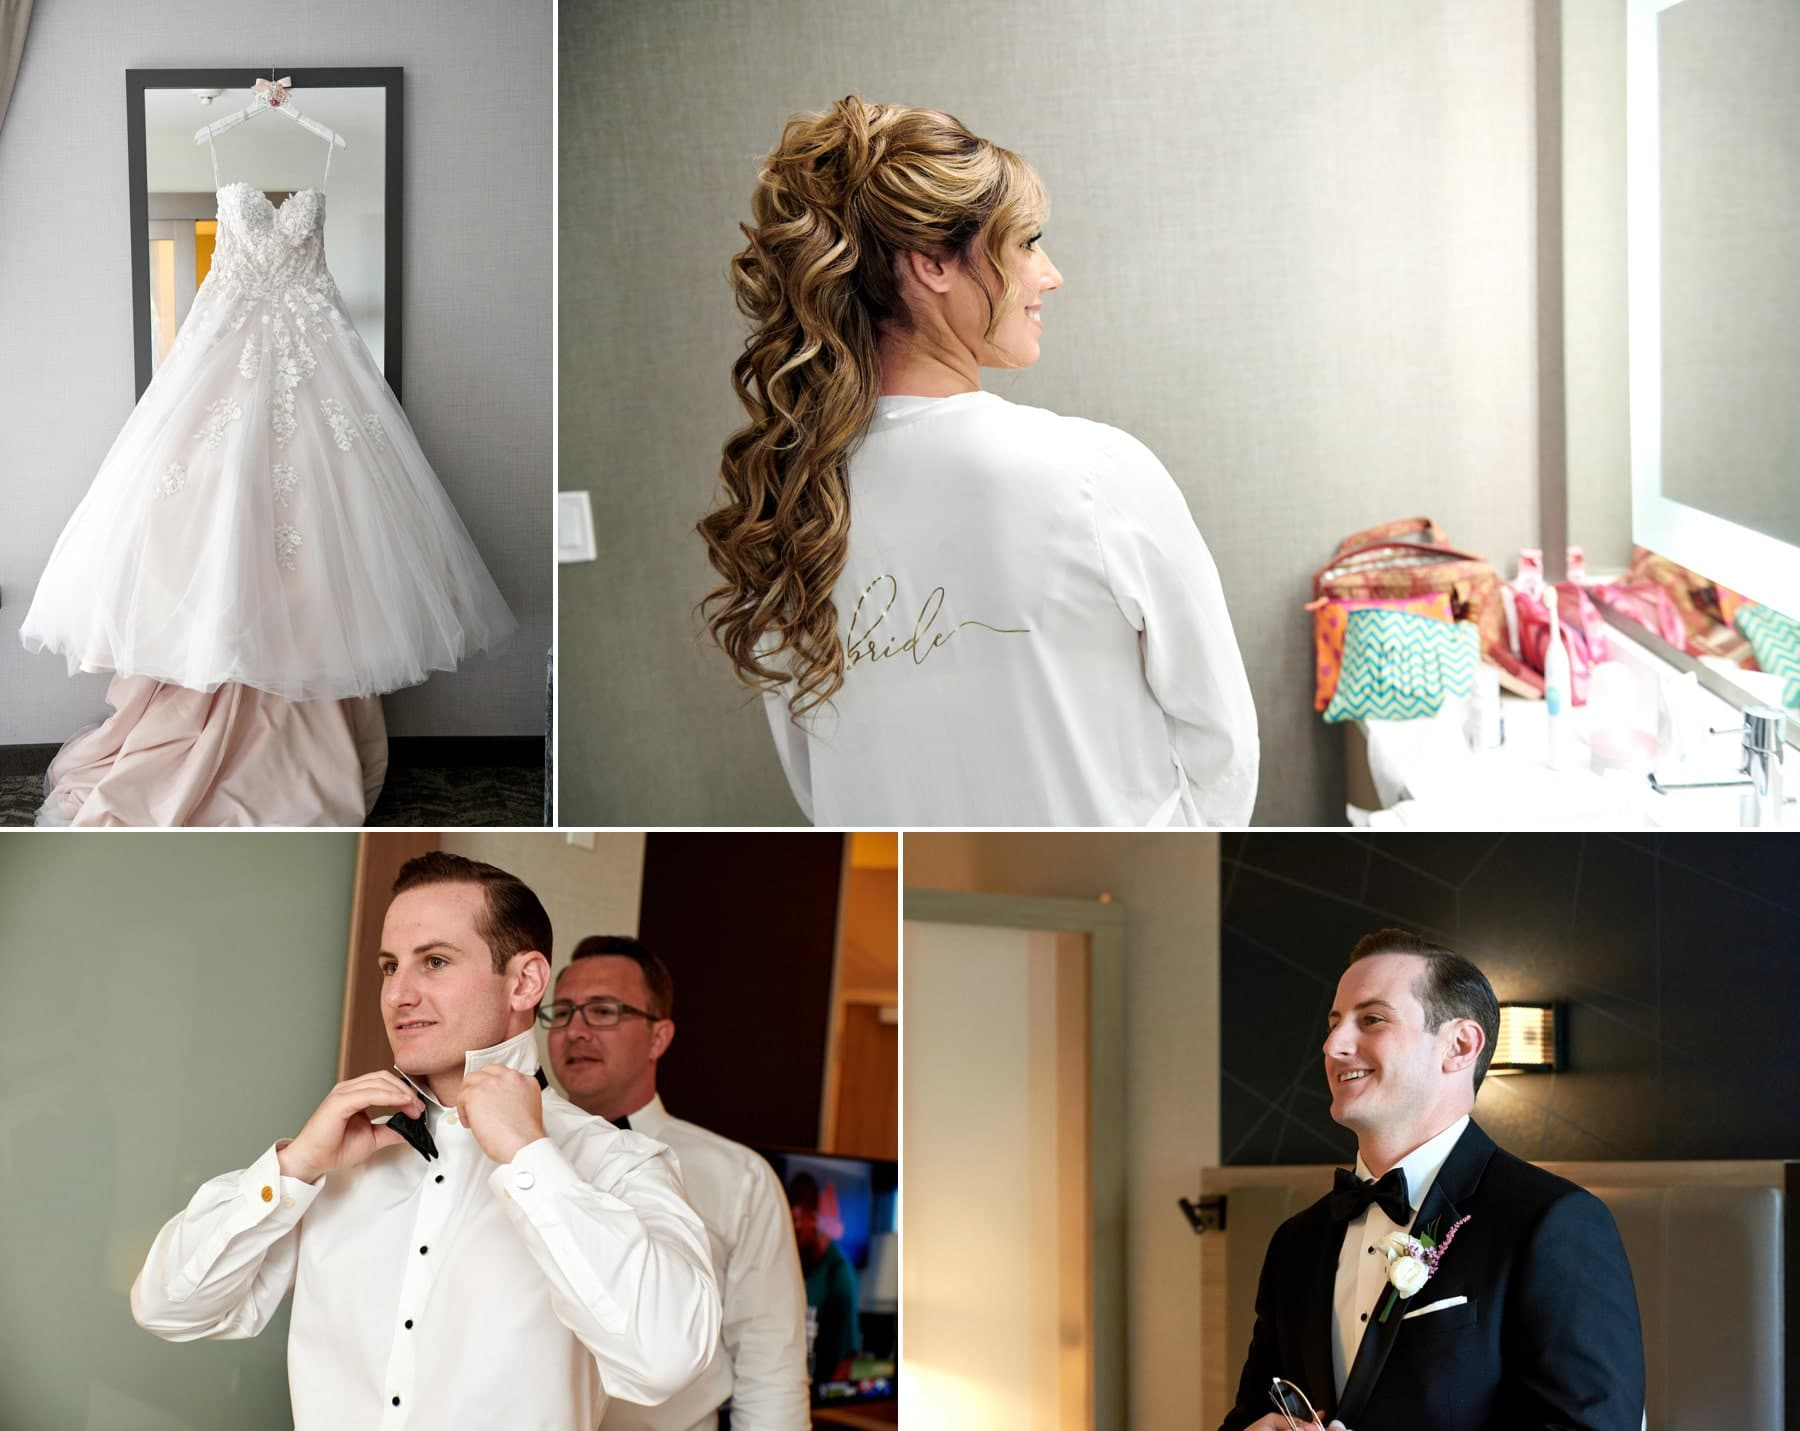 bride and groom getting ready photos